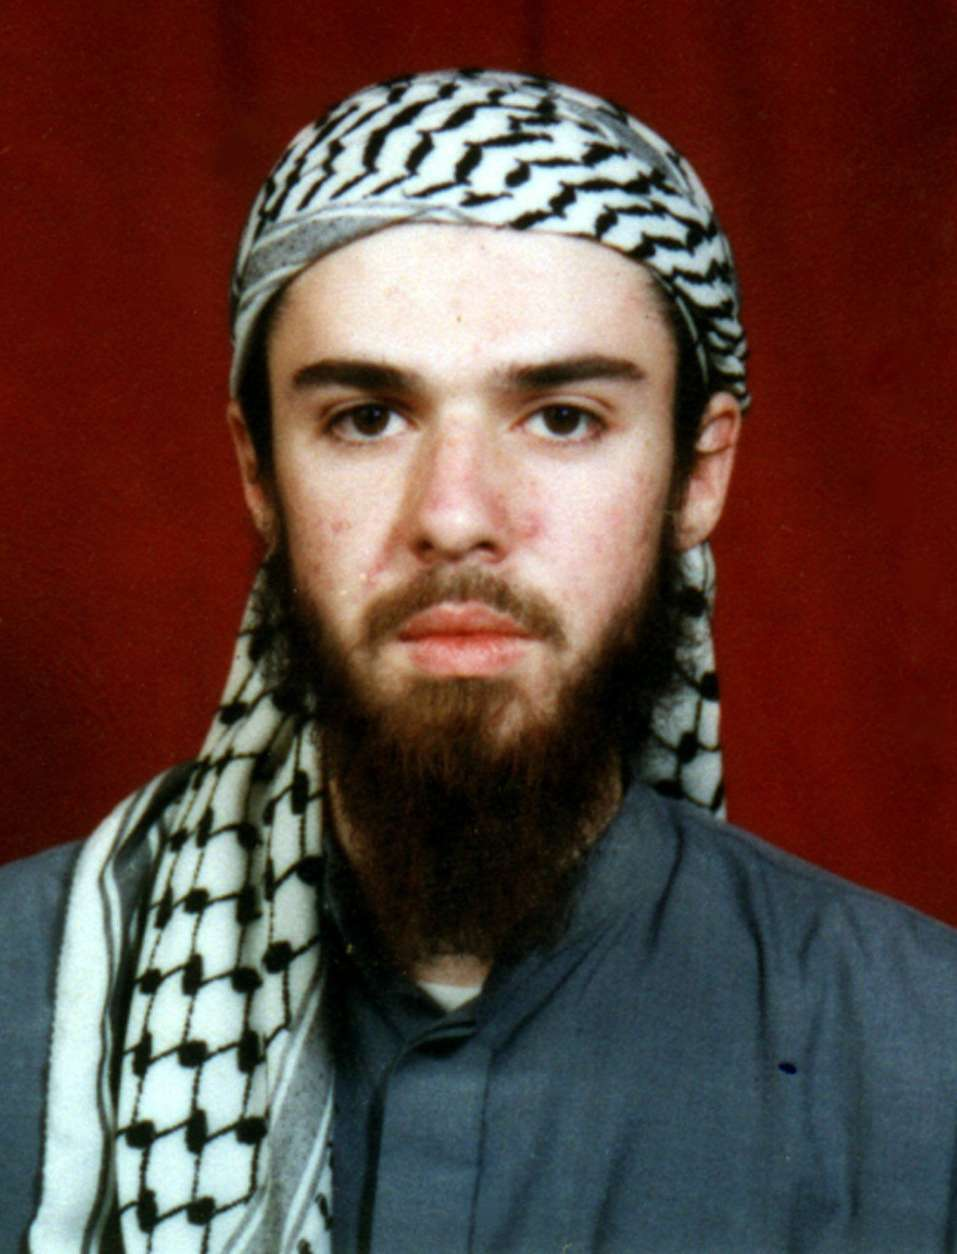 American John Walker Lindh is seen in this undated photo obtained Tuesday, Jan. 22, 2002, from a religious school where he studied for five months in Bannu, 304 kilometers (190 miles) southwest of Islamabad, Pakistan. Lindh, who fought with the Taliban in Afghanistan, began his journey home from the war in Afghanistan on Tuesday to face charges he conspired with Islamic radicals to kill fellow countrymen. (AP Photo)